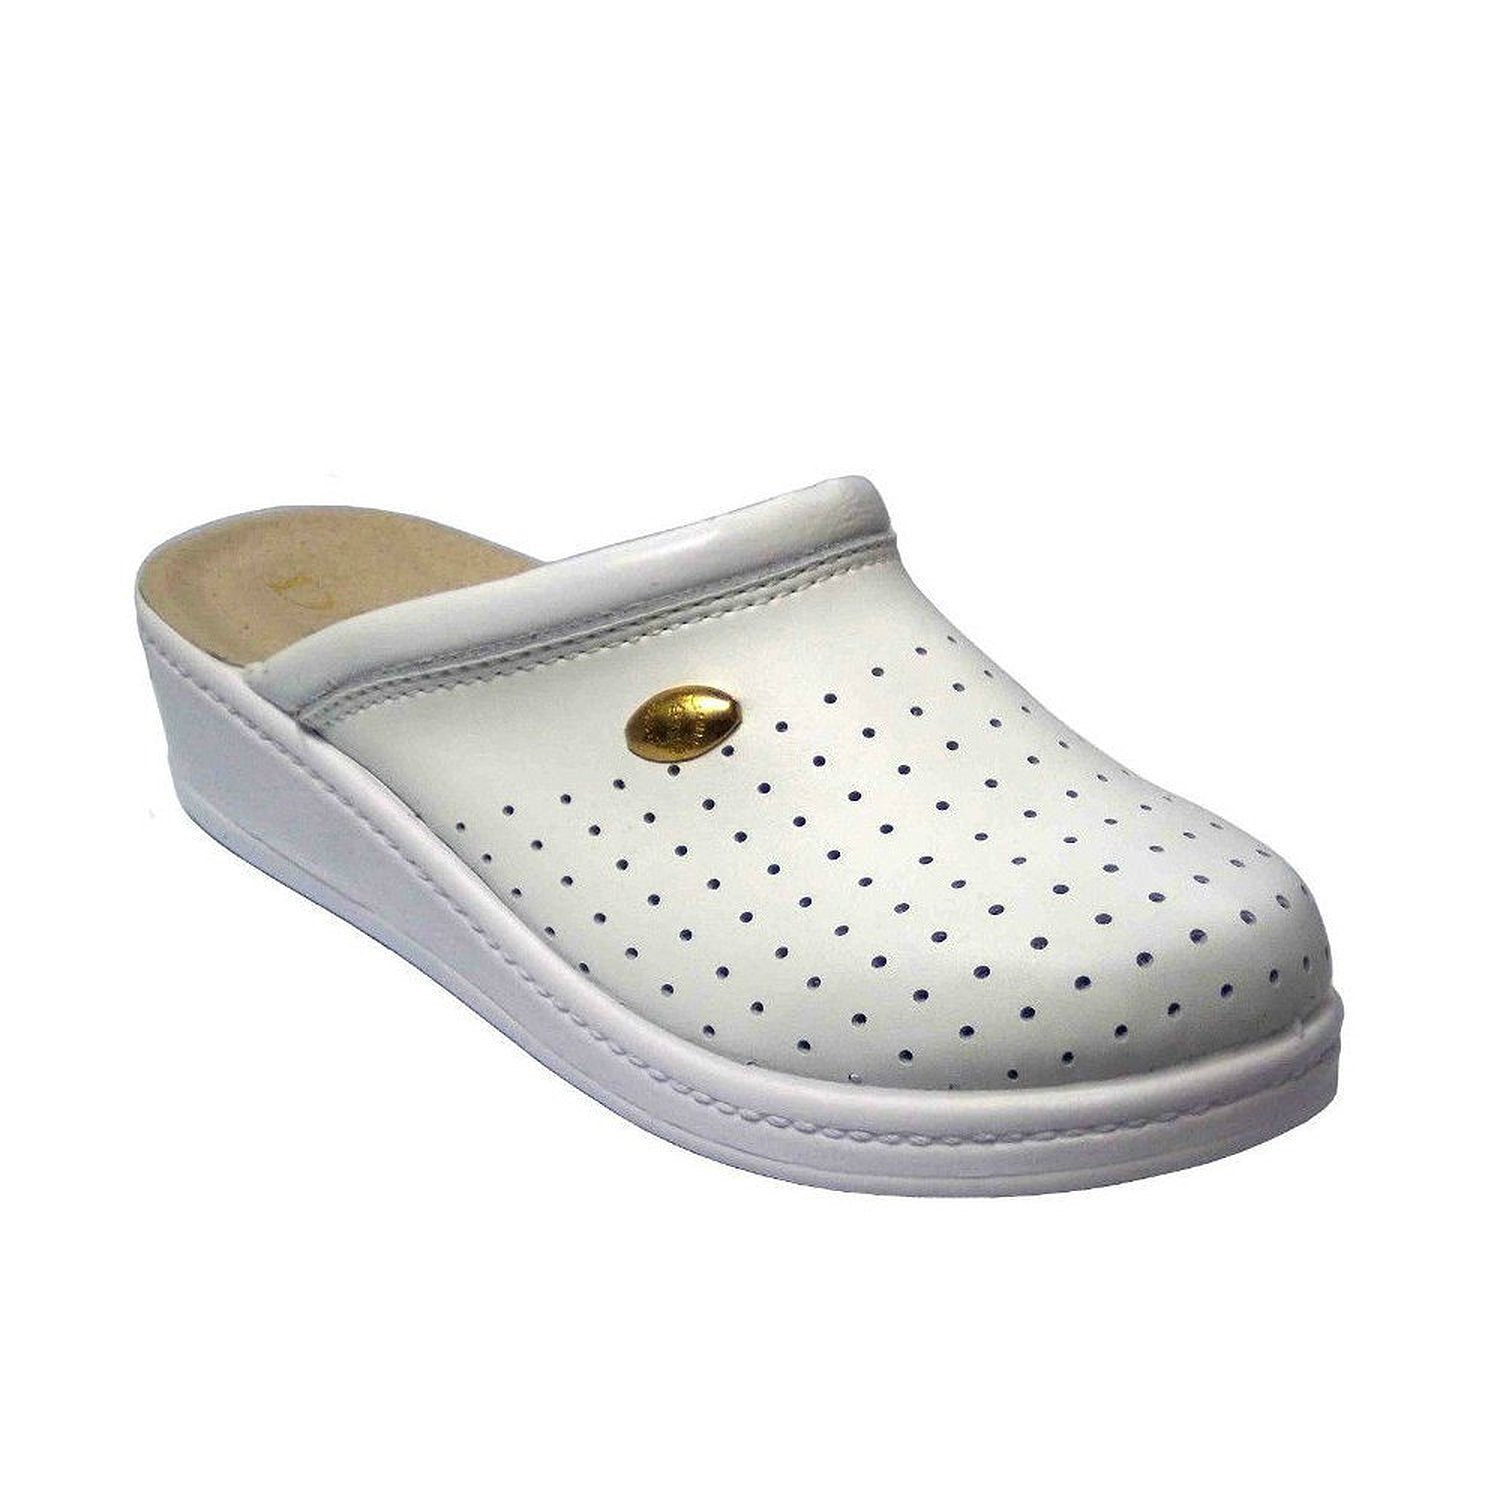 2bb0c939ef9994 Get Quotations · Damiani s by Italian Shoemakers Women s 300 White Leather  Slip On Perforated Clogs Shoes